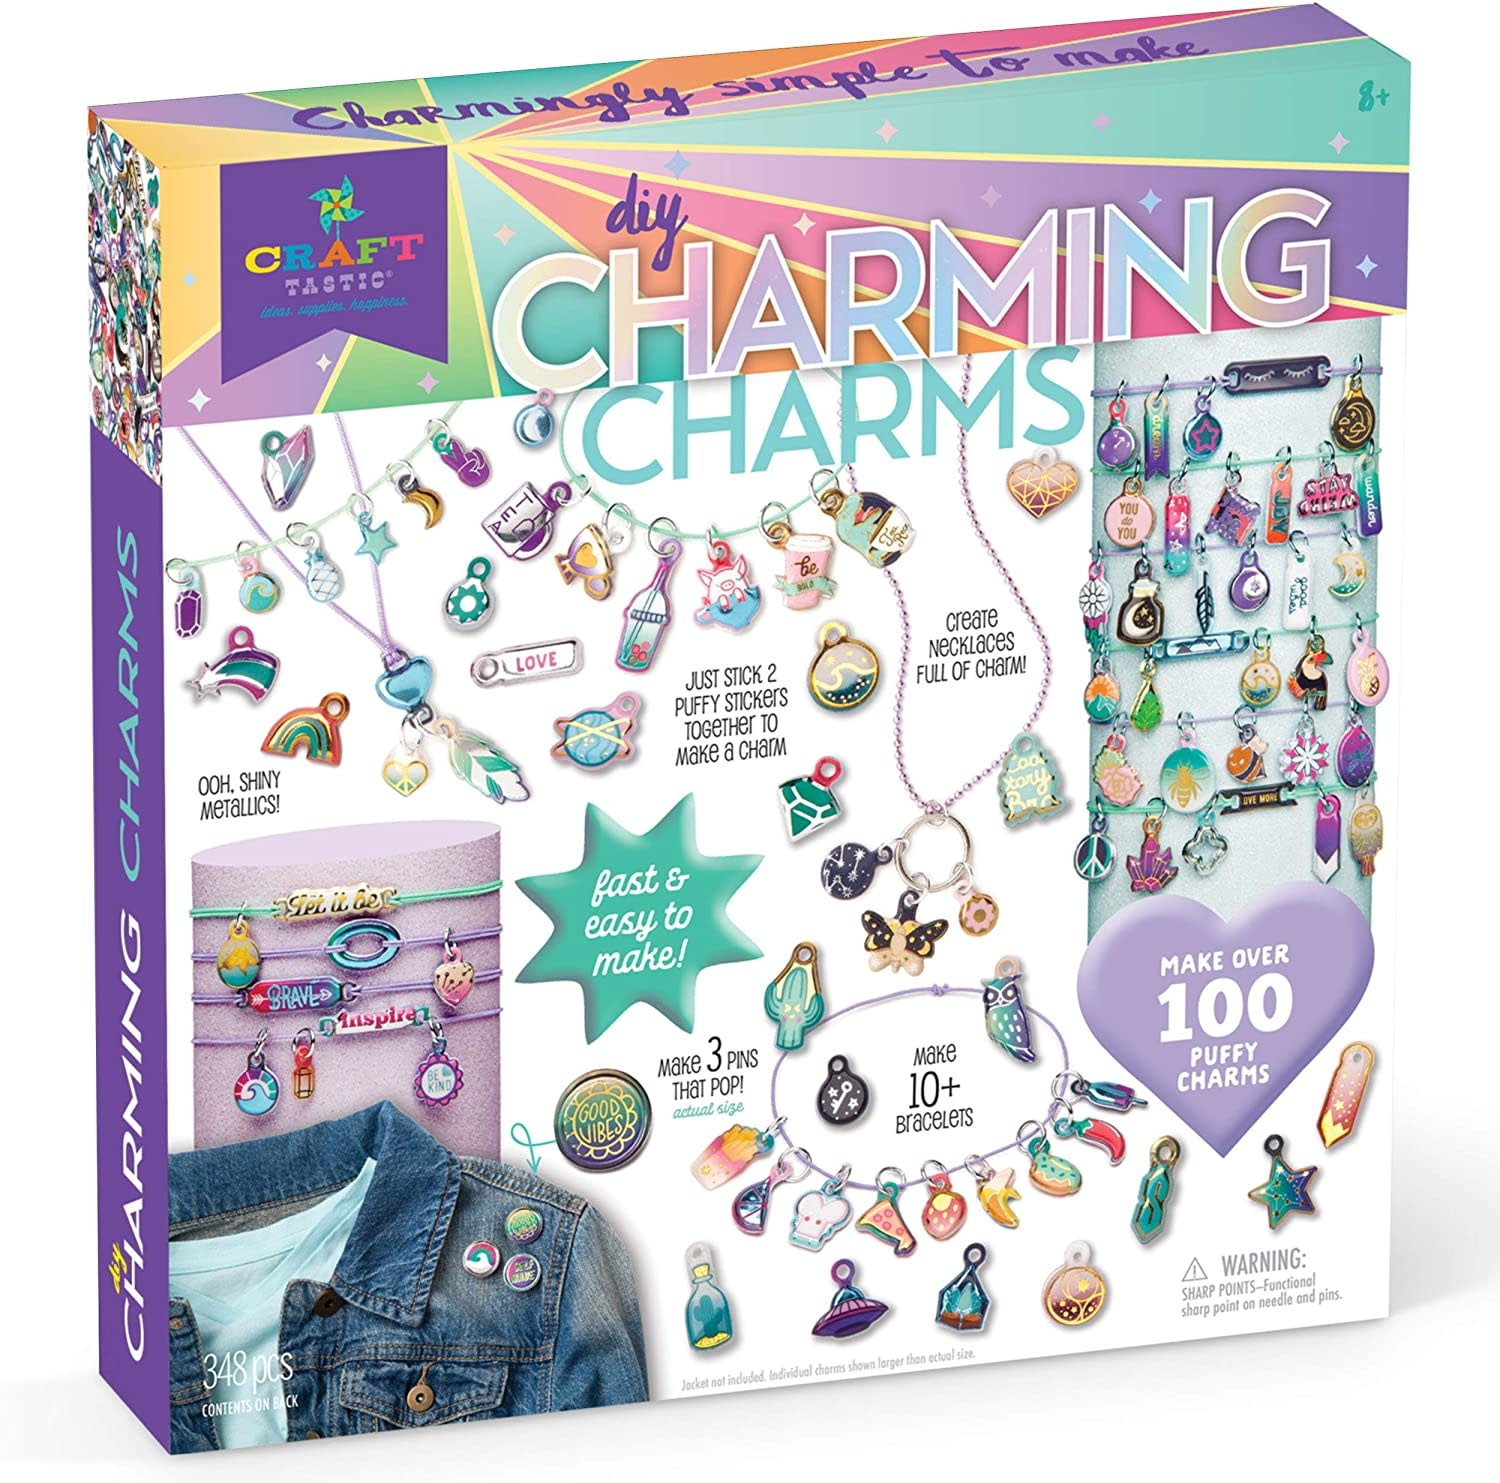 Charming Charms DIY Kit by Craft-tastic